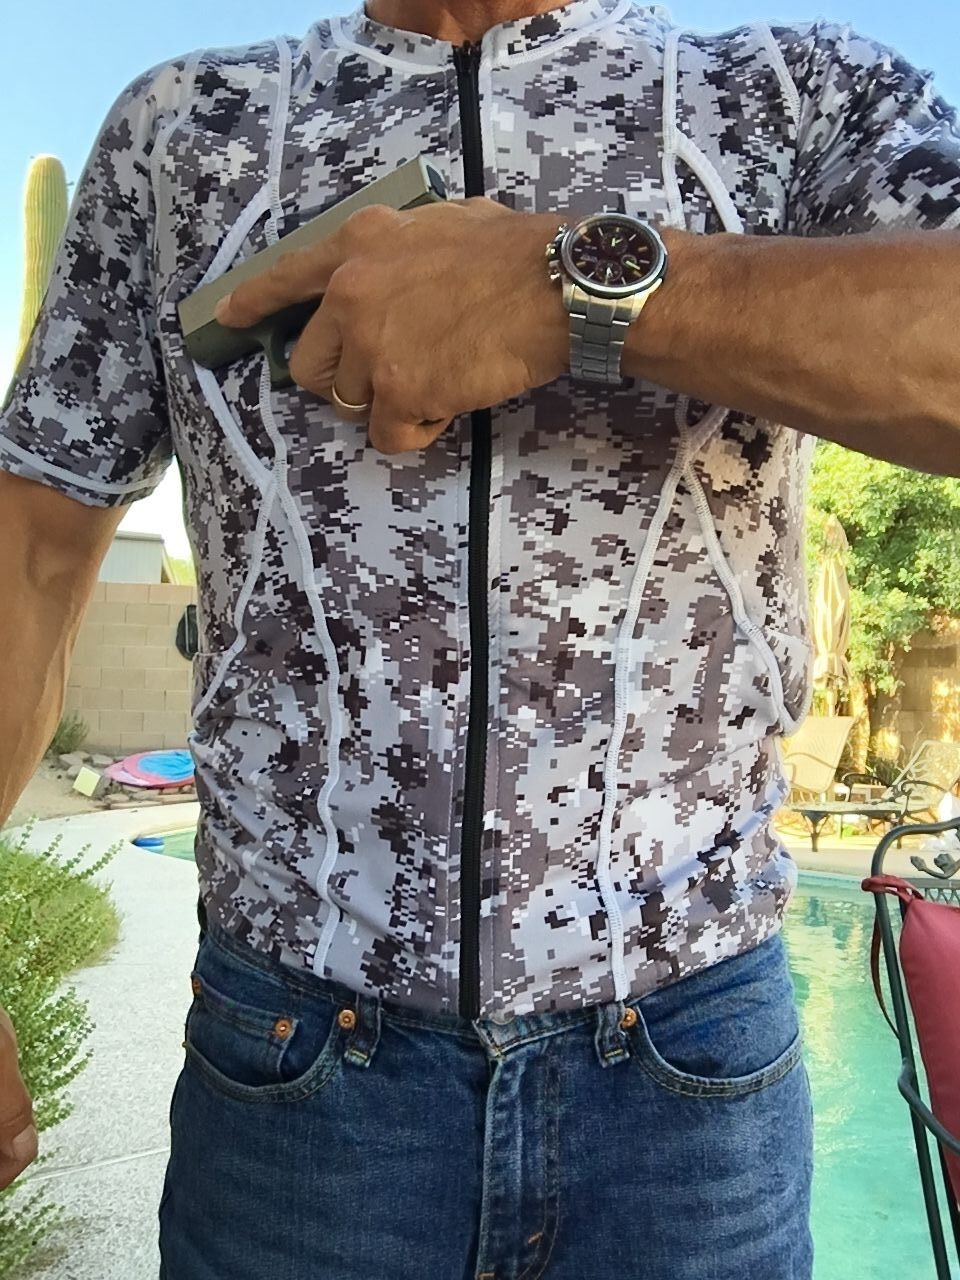 Conceal Carry Holster Shirt - Men's  XS  Concealed Tactical Gear CCW Clothing  inexpensive